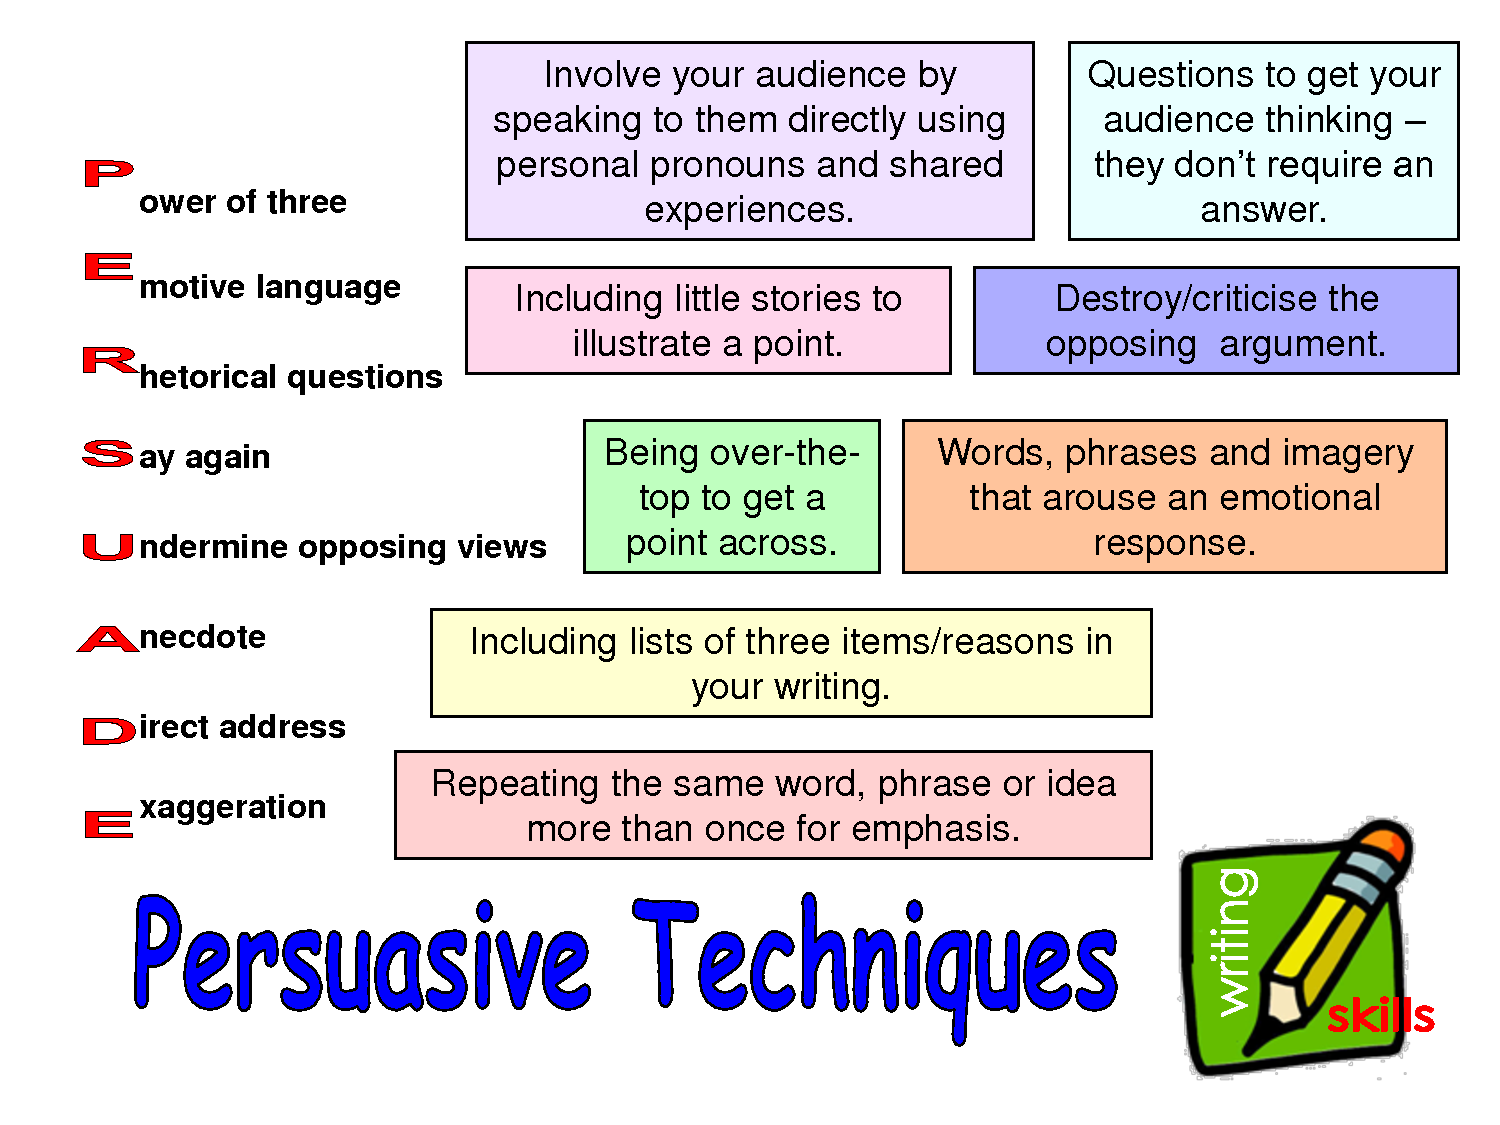 persuasive techniques improving your writing persuasive techniques acircmiddot essay writingpersuasive